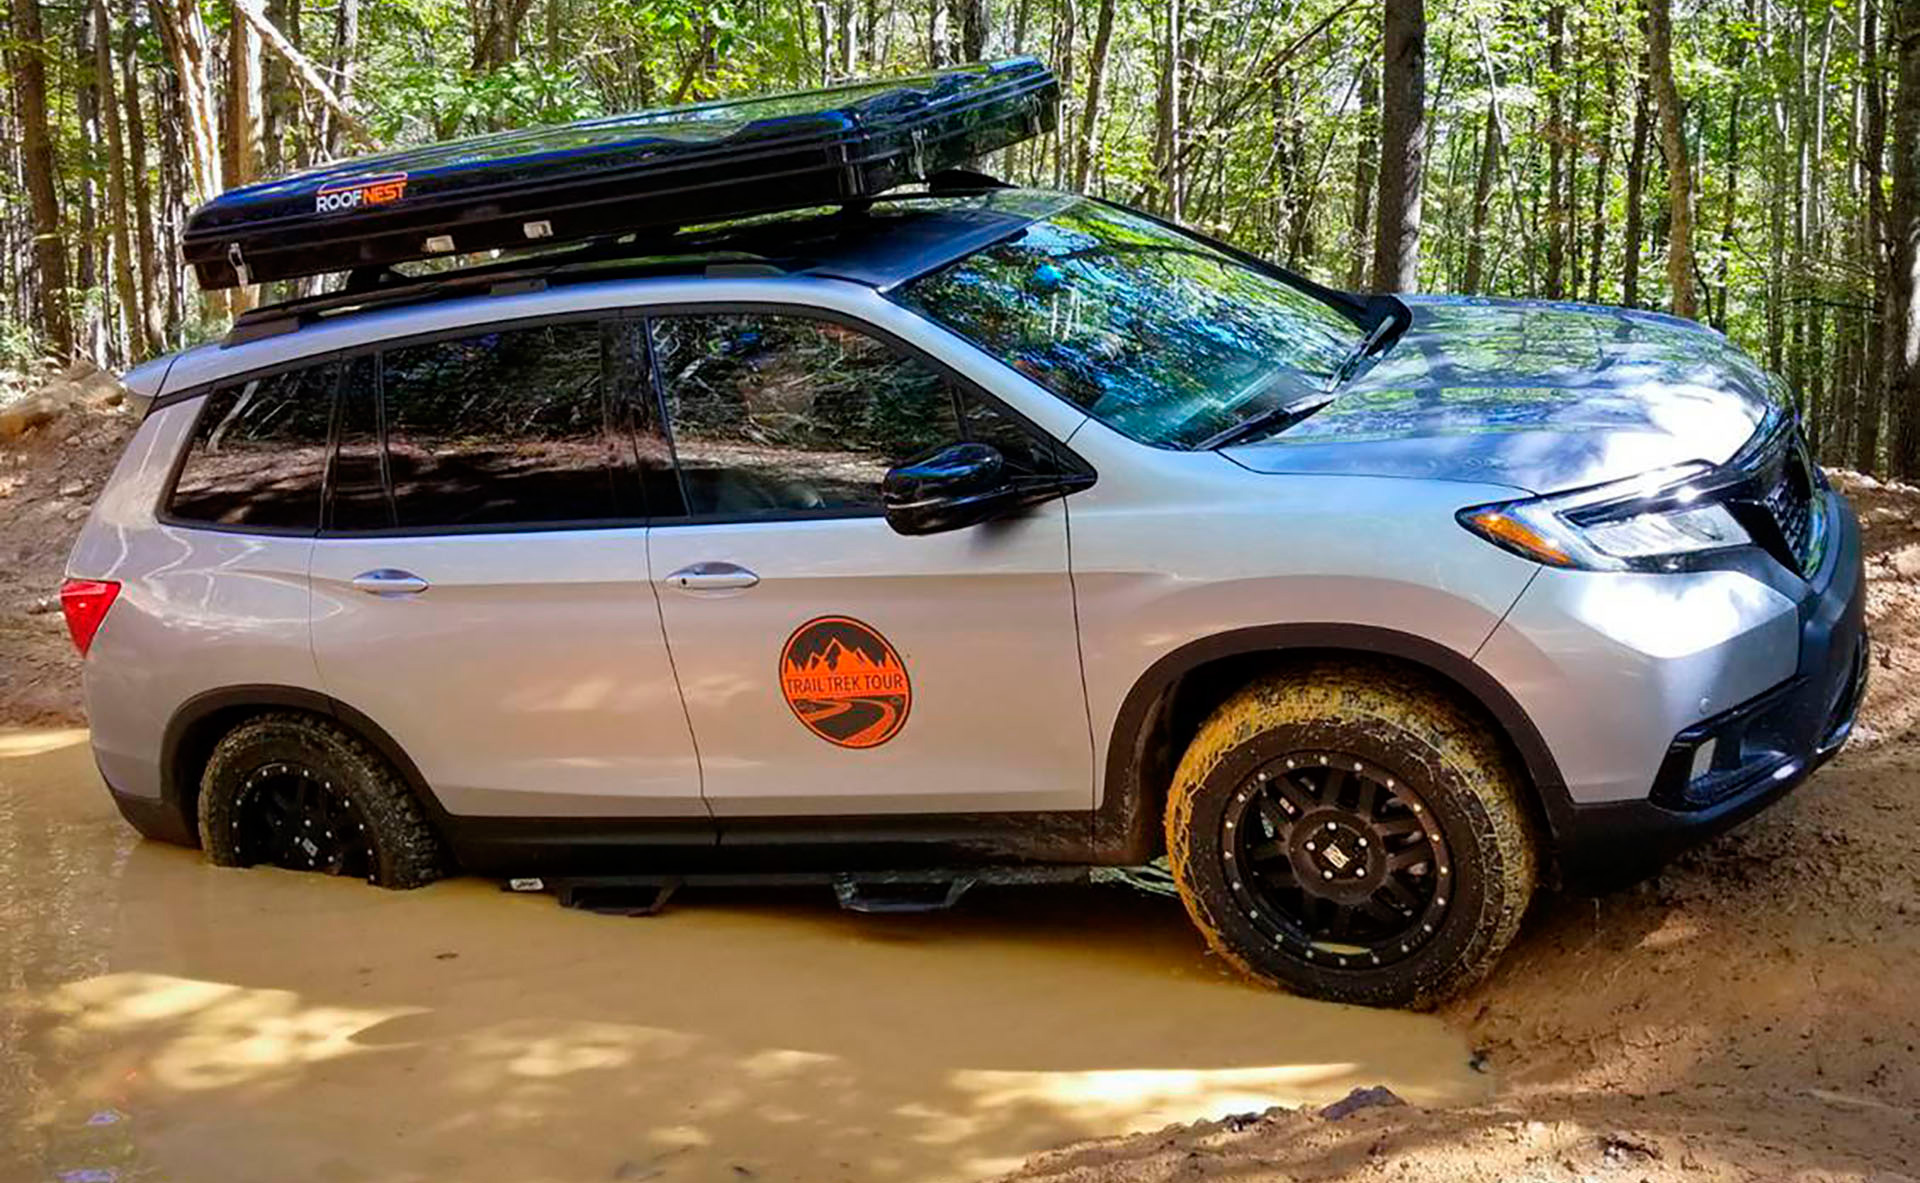 Driving Line : Want to Take Your Crossover SUV Off-Roading? Try These 5 Upgrades